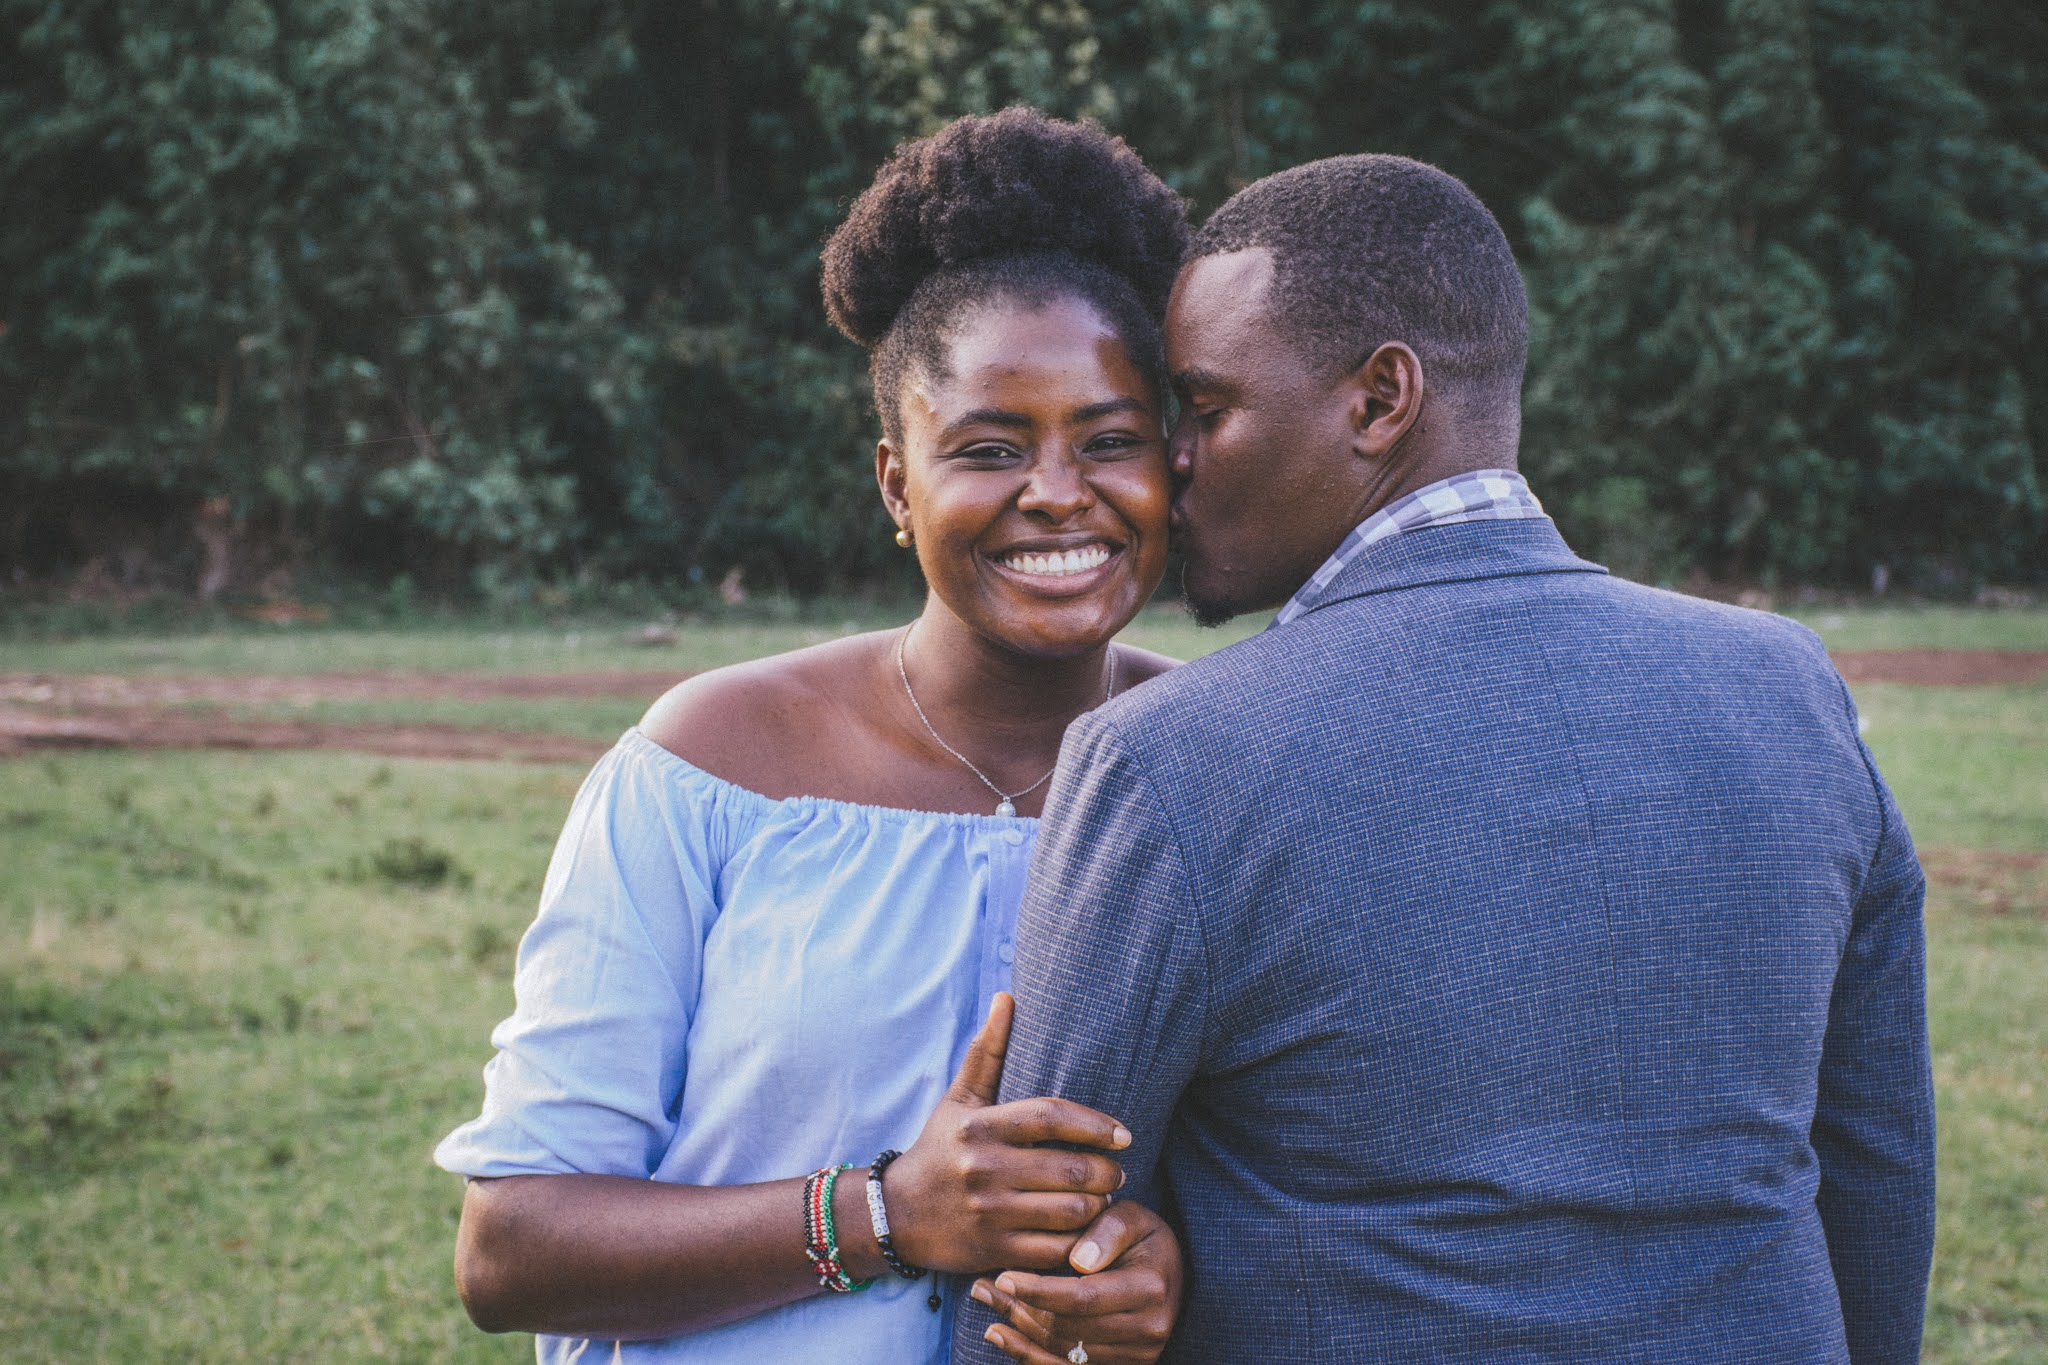 How to Keep Your Marriage Strong After Kids